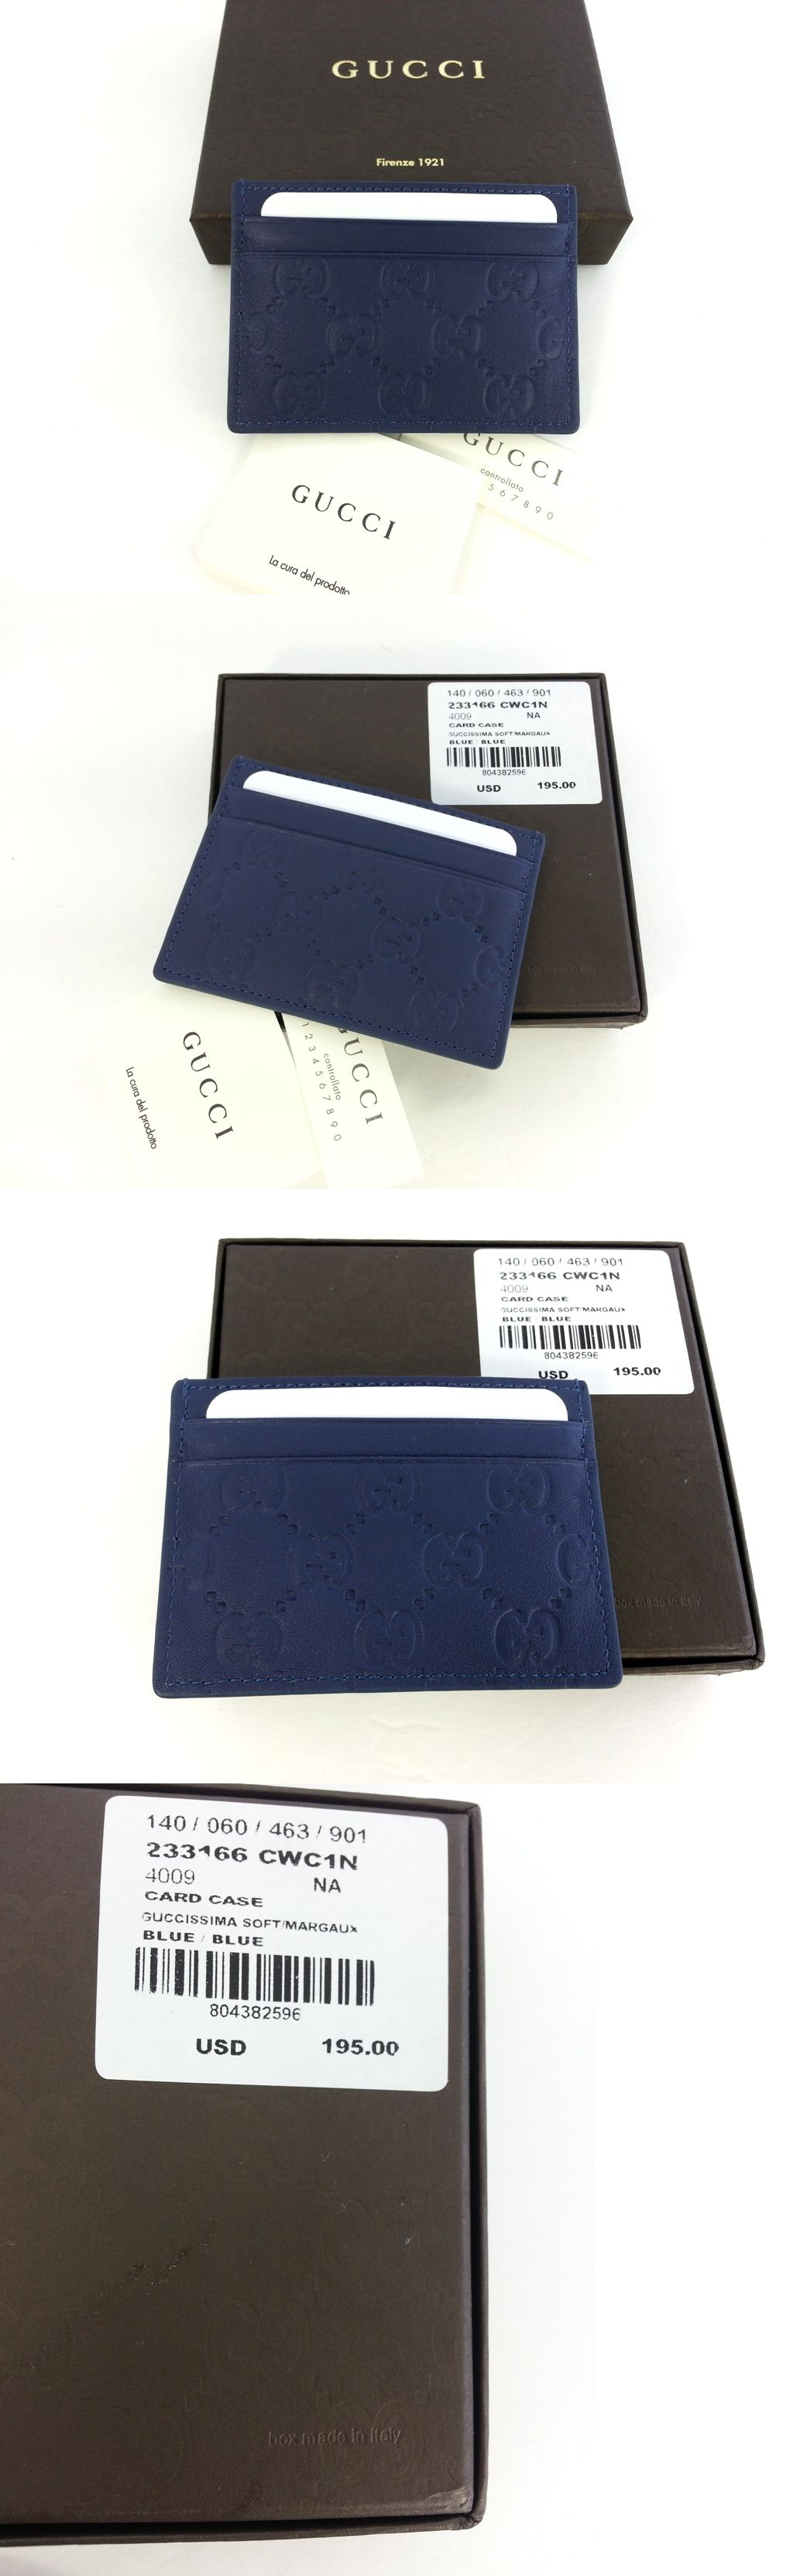 Business and Credit Card Cases 105860: Authentic Gucci Guccissima ...